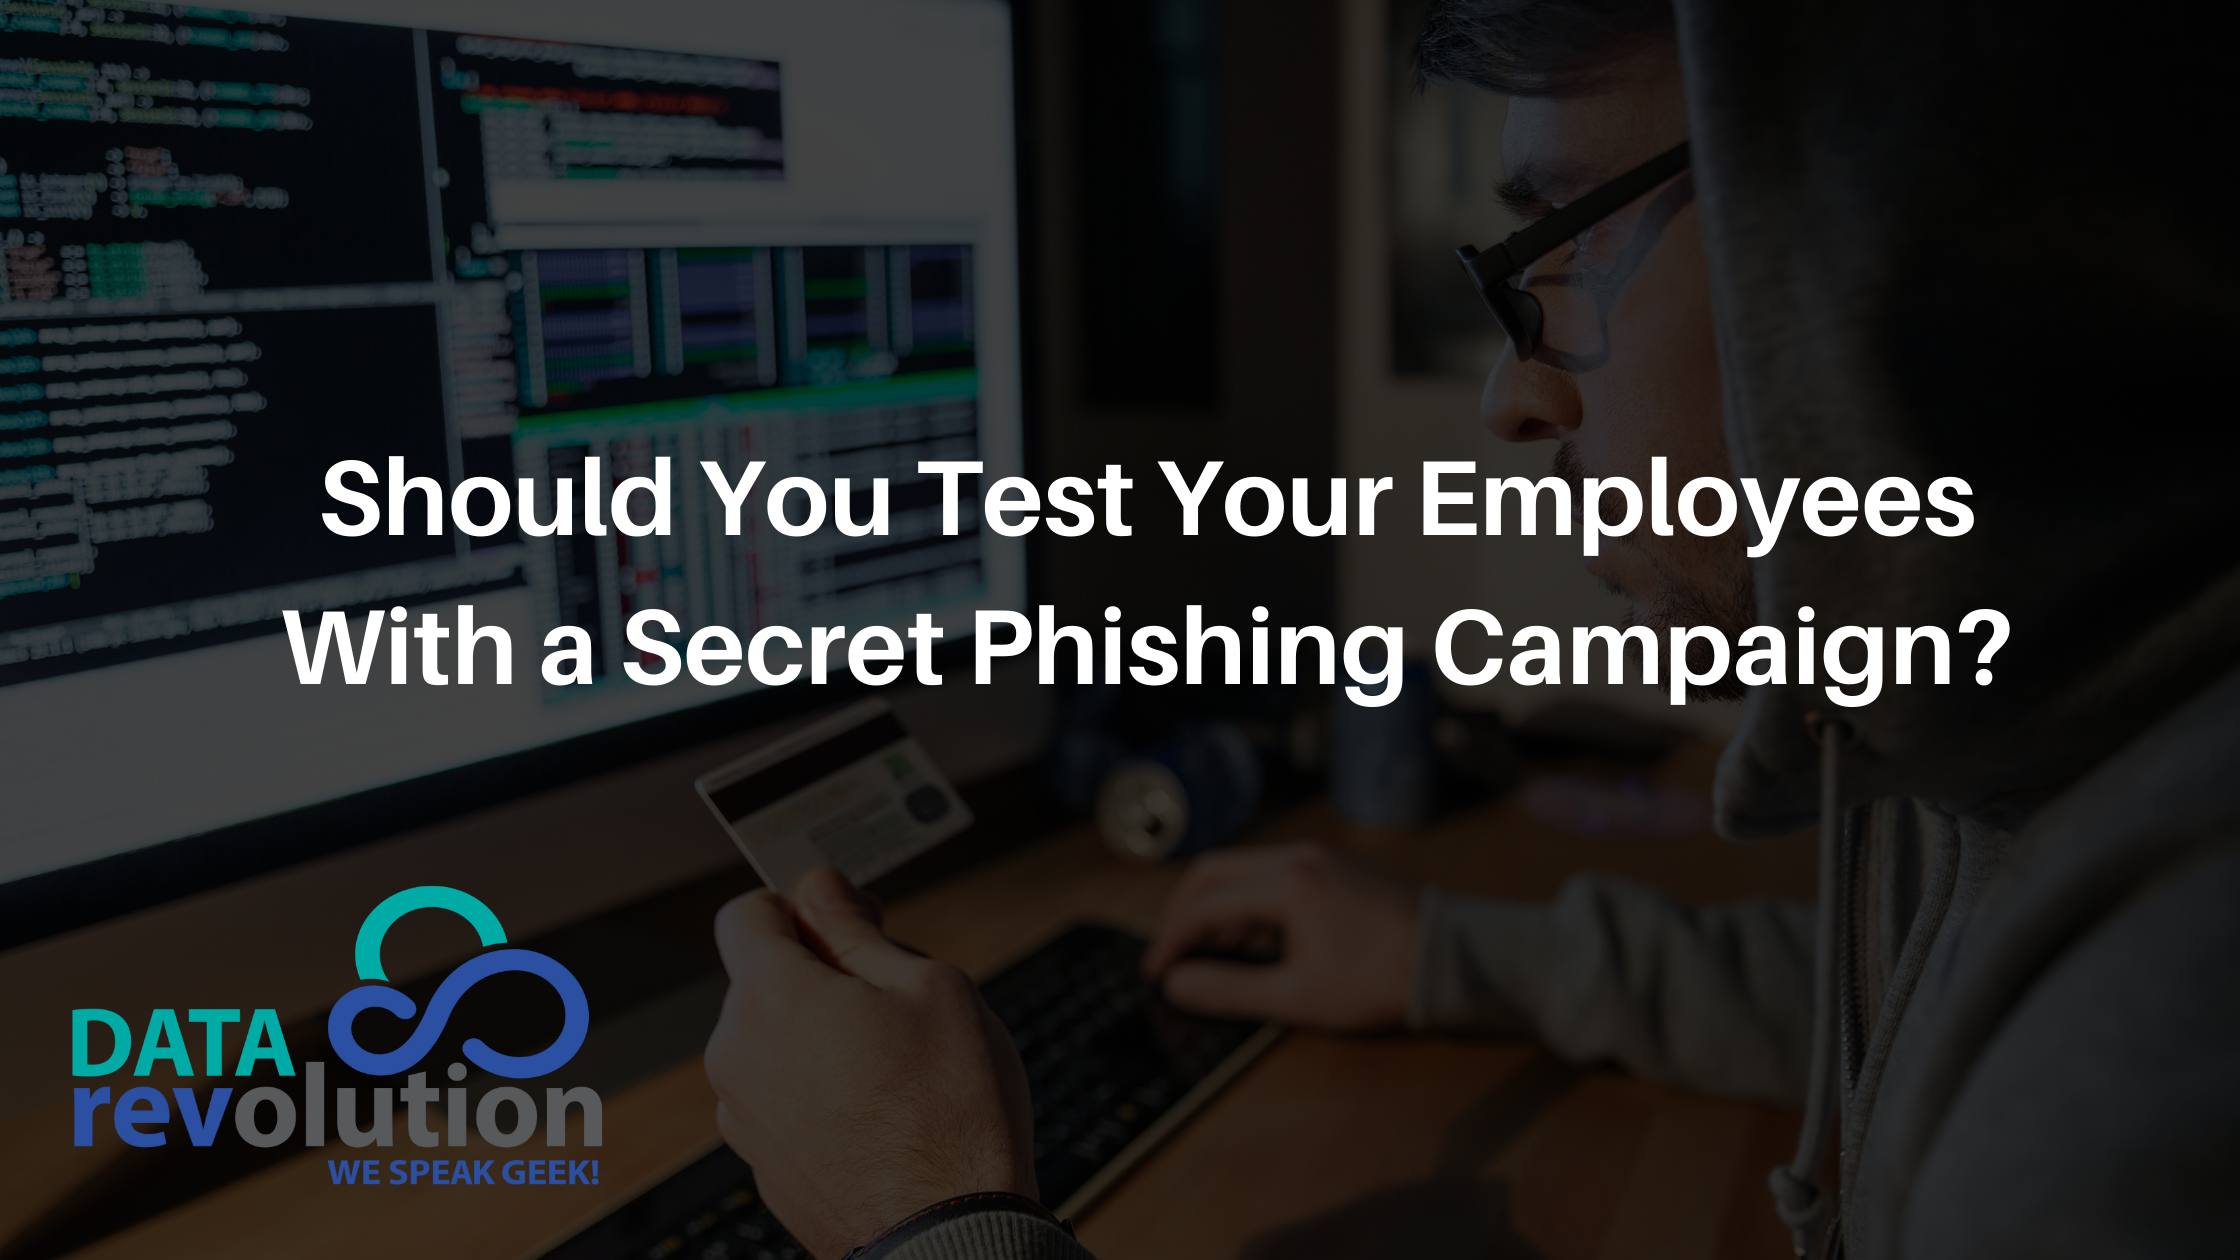 Should You Test Your Employees With a Secret Phishing Campaign